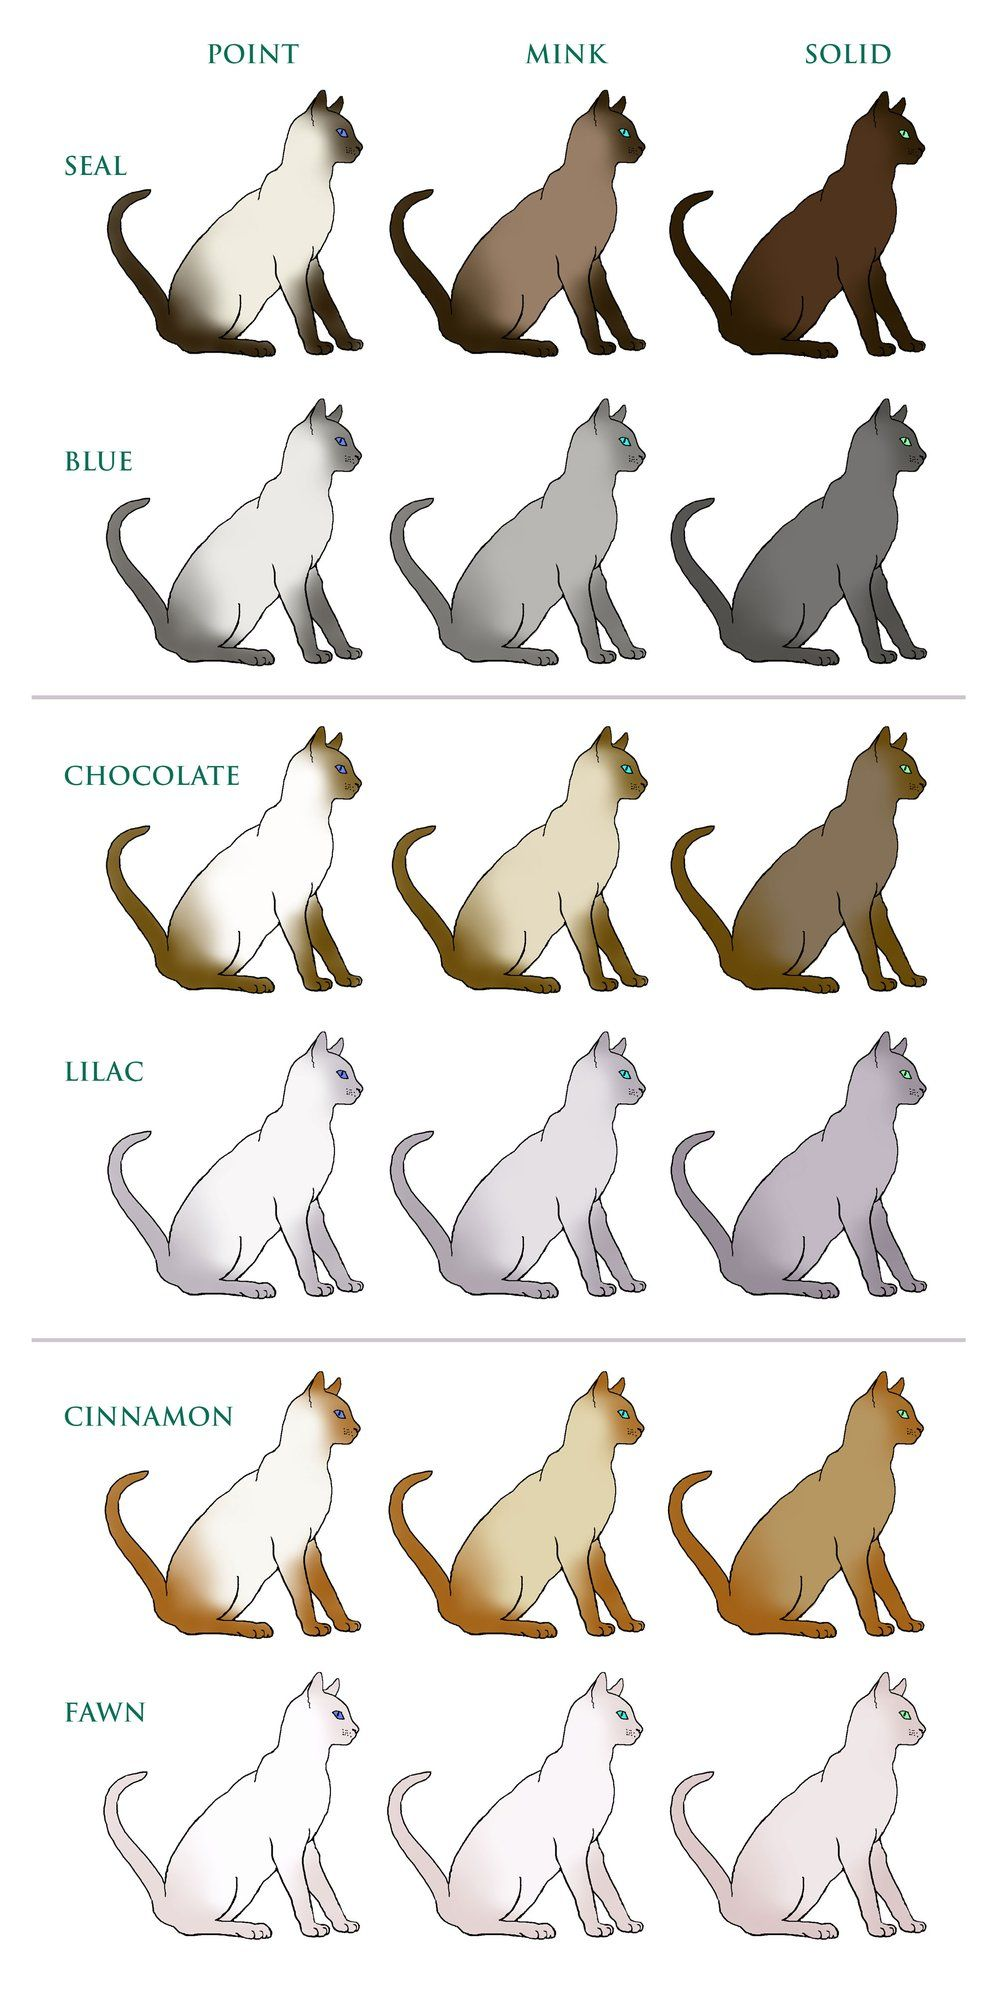 Coat Colour And Pattern Tonkinese Cats Kittens Queensland Tonkinese Cat Cat Colors Burmese Cat